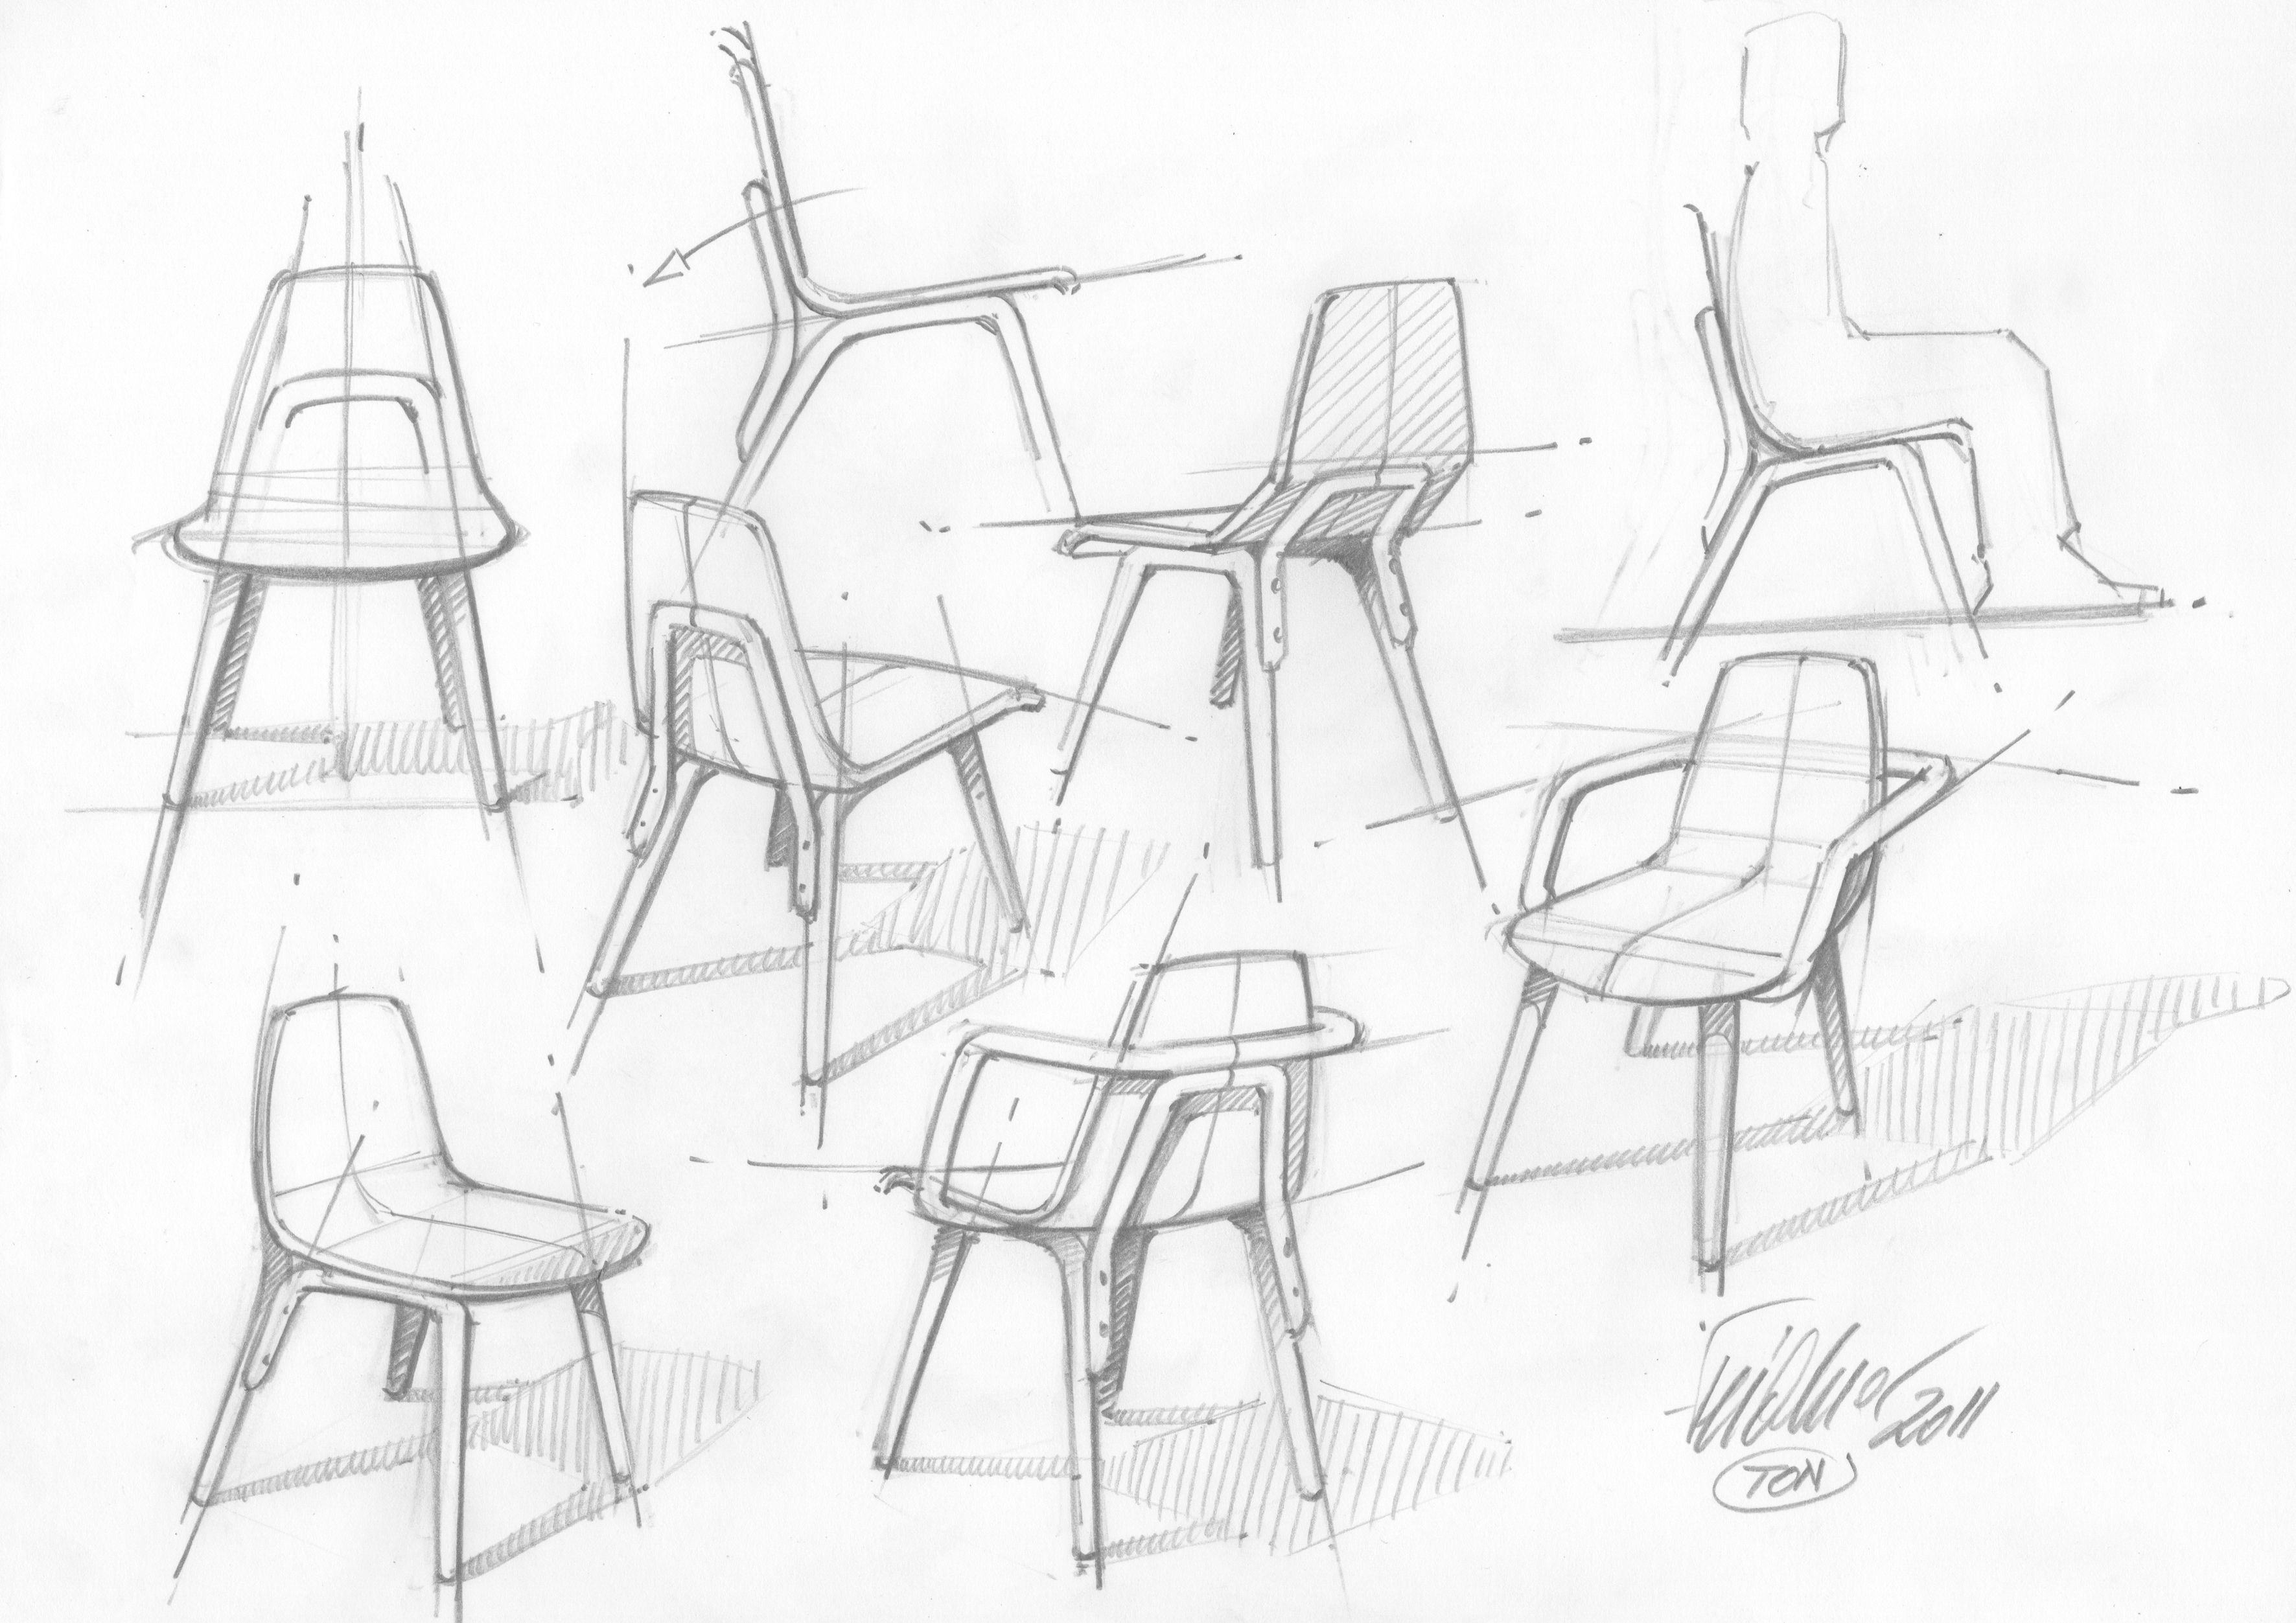 chair design drawing. TRAM CHAIR Date: 2013 Design: Thomas Feichtner Type: Chair Material: Bended Wood Producer: TON, Czech Republic Design Drawing A